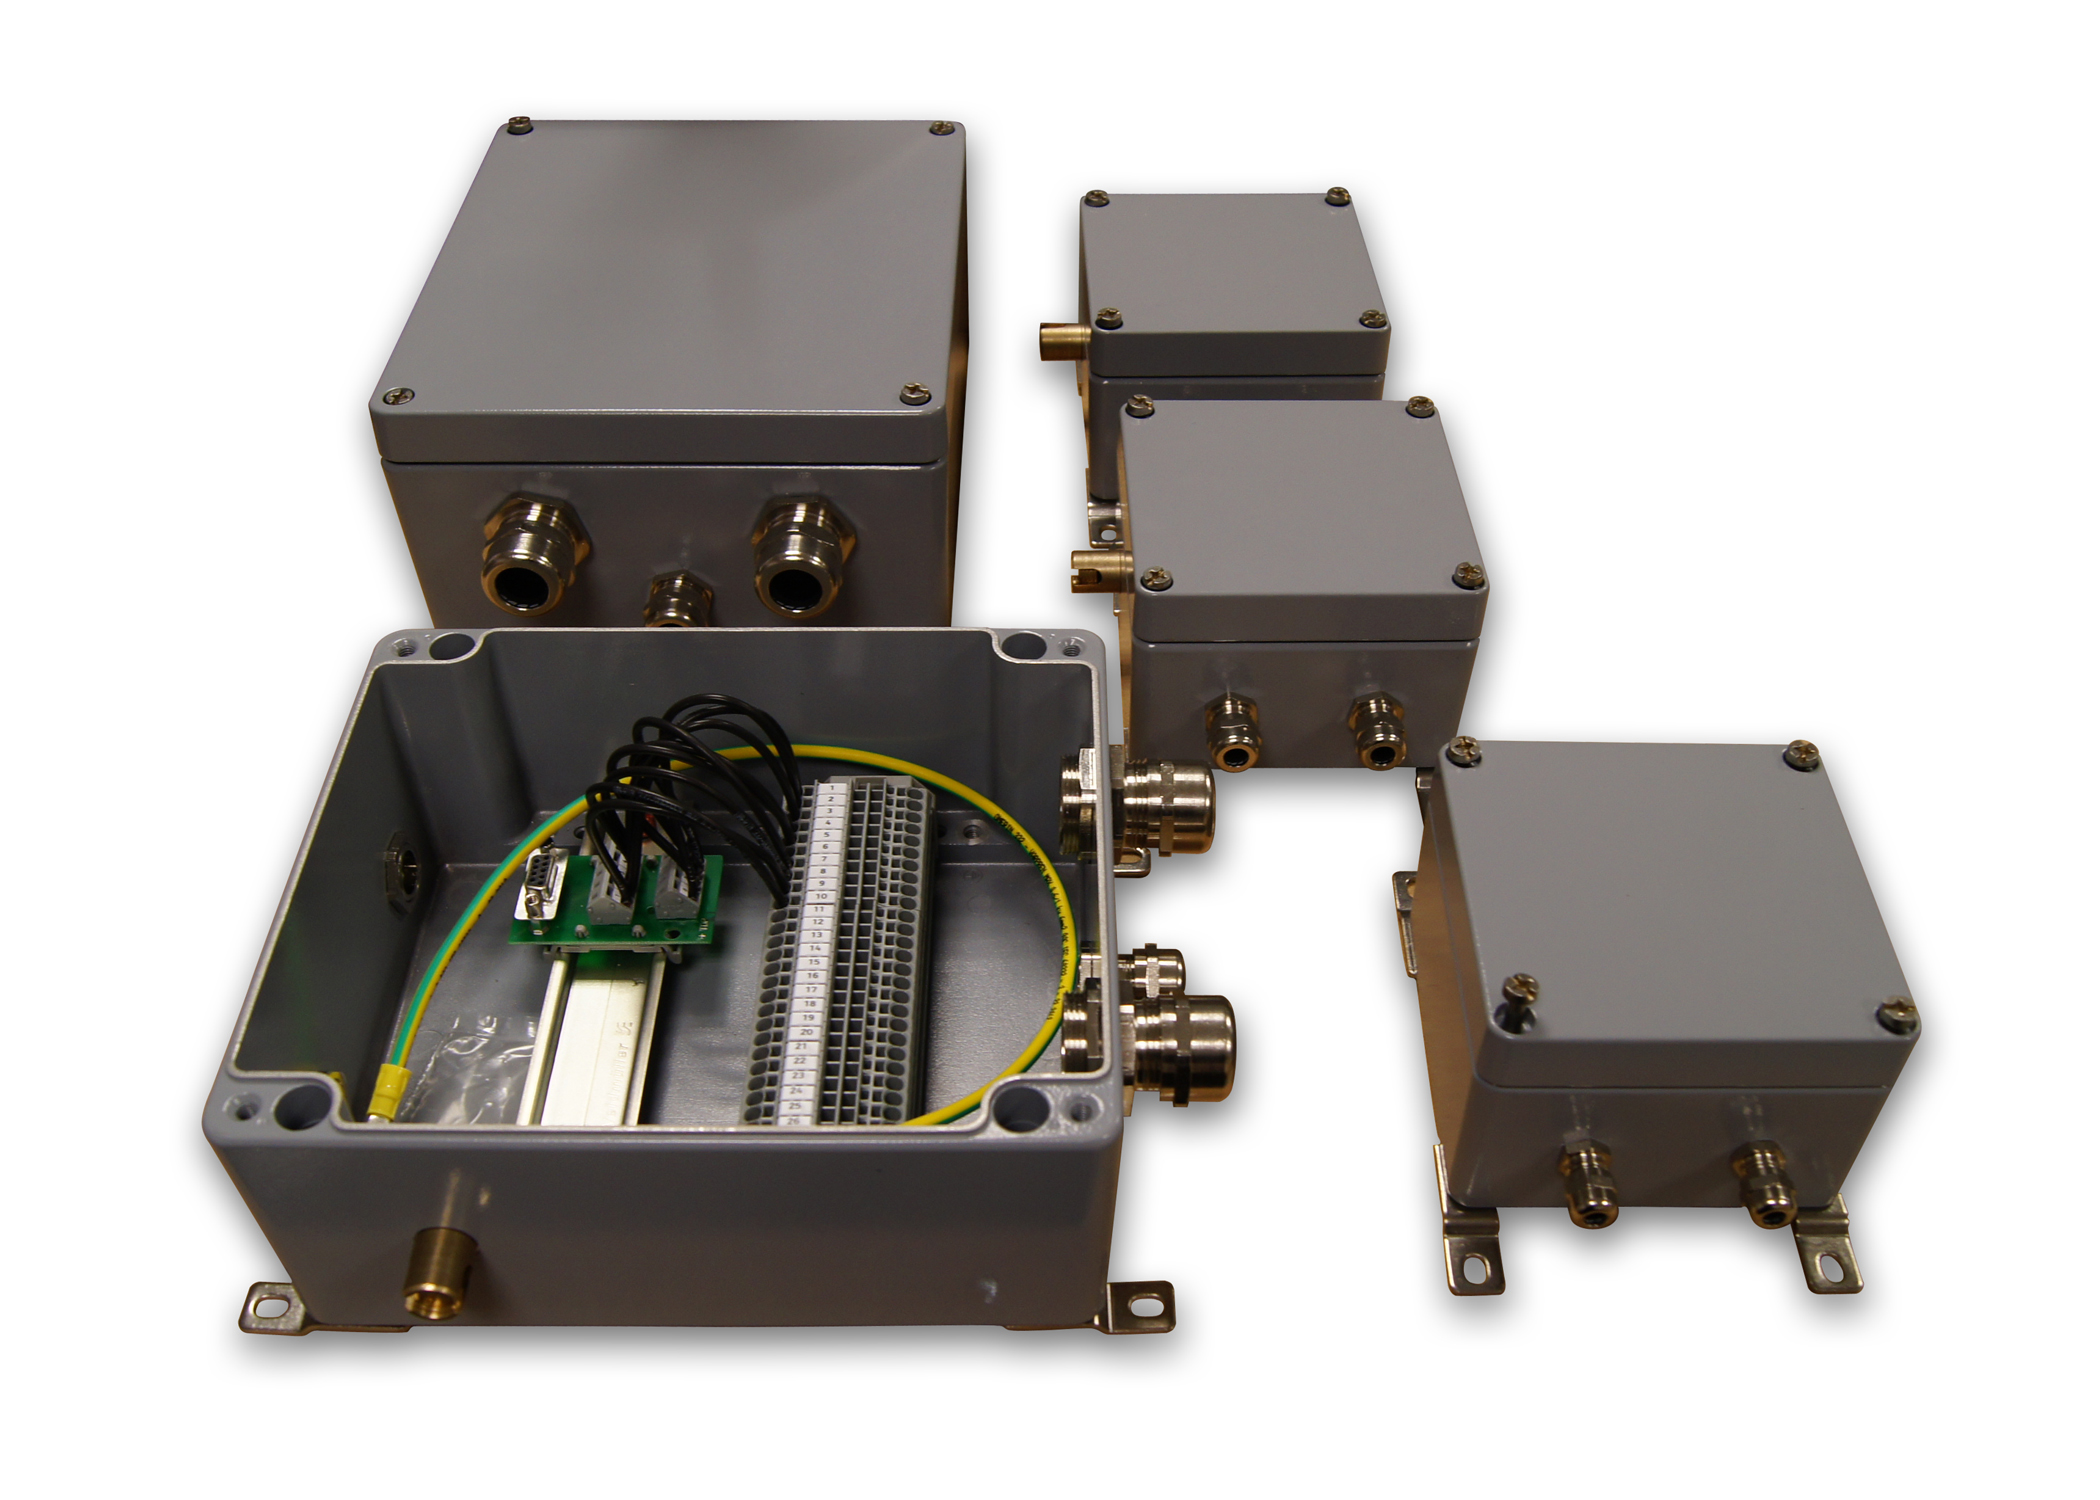 Spelsberg's next day custom enclosure samples keep projects on schedule